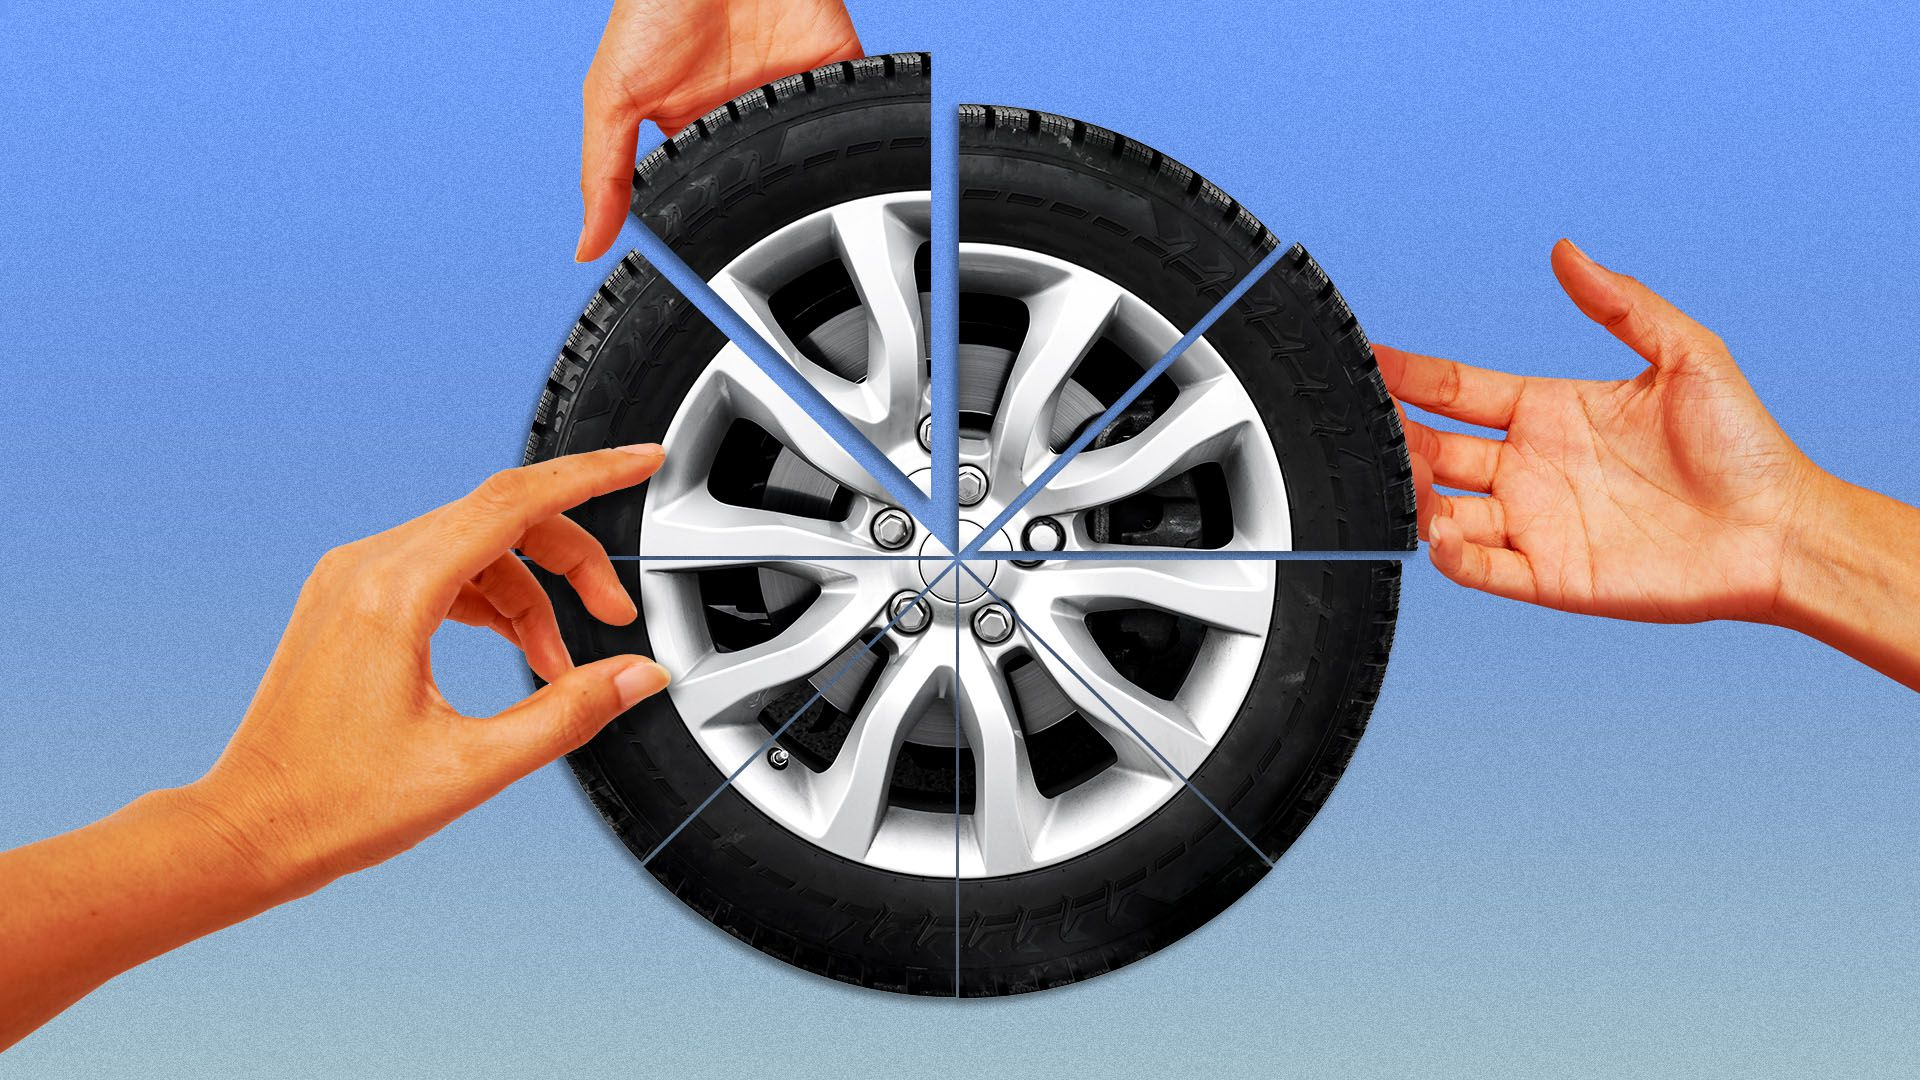 Illustration of tire split like a pie, with hands reaching to grab slices